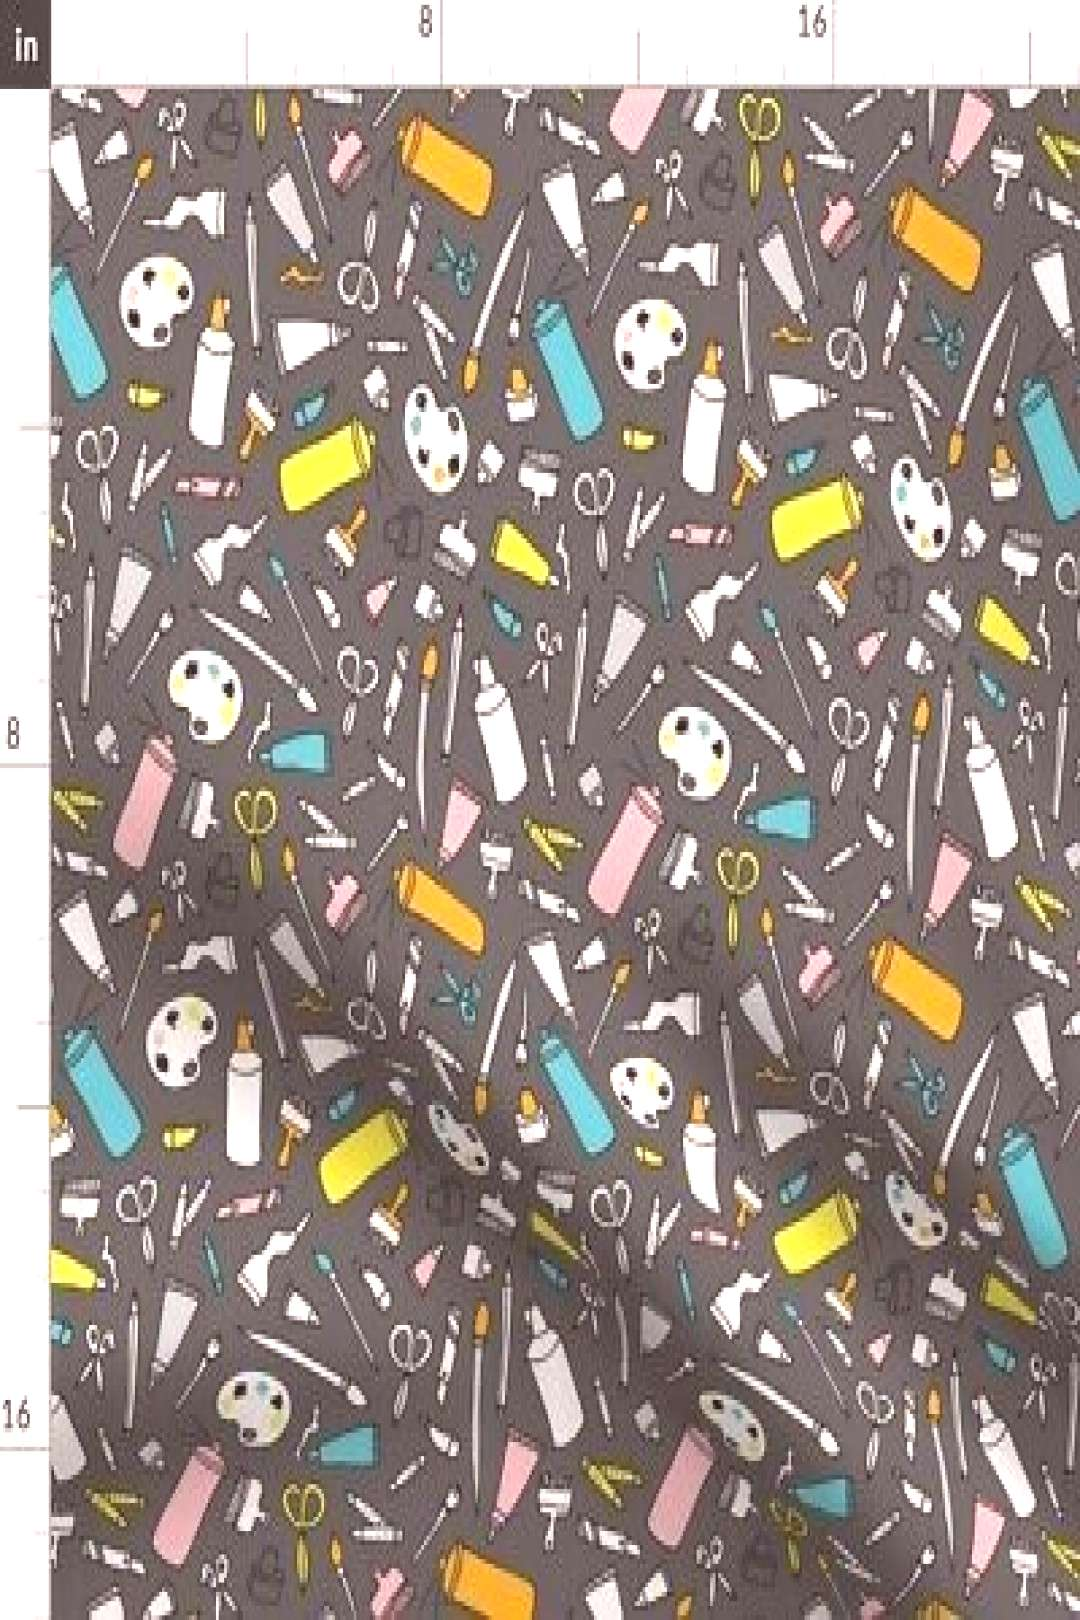 Art Supply Brush Artist Doodle Paint Crayon Fabric Printed by Spoonflower BTY